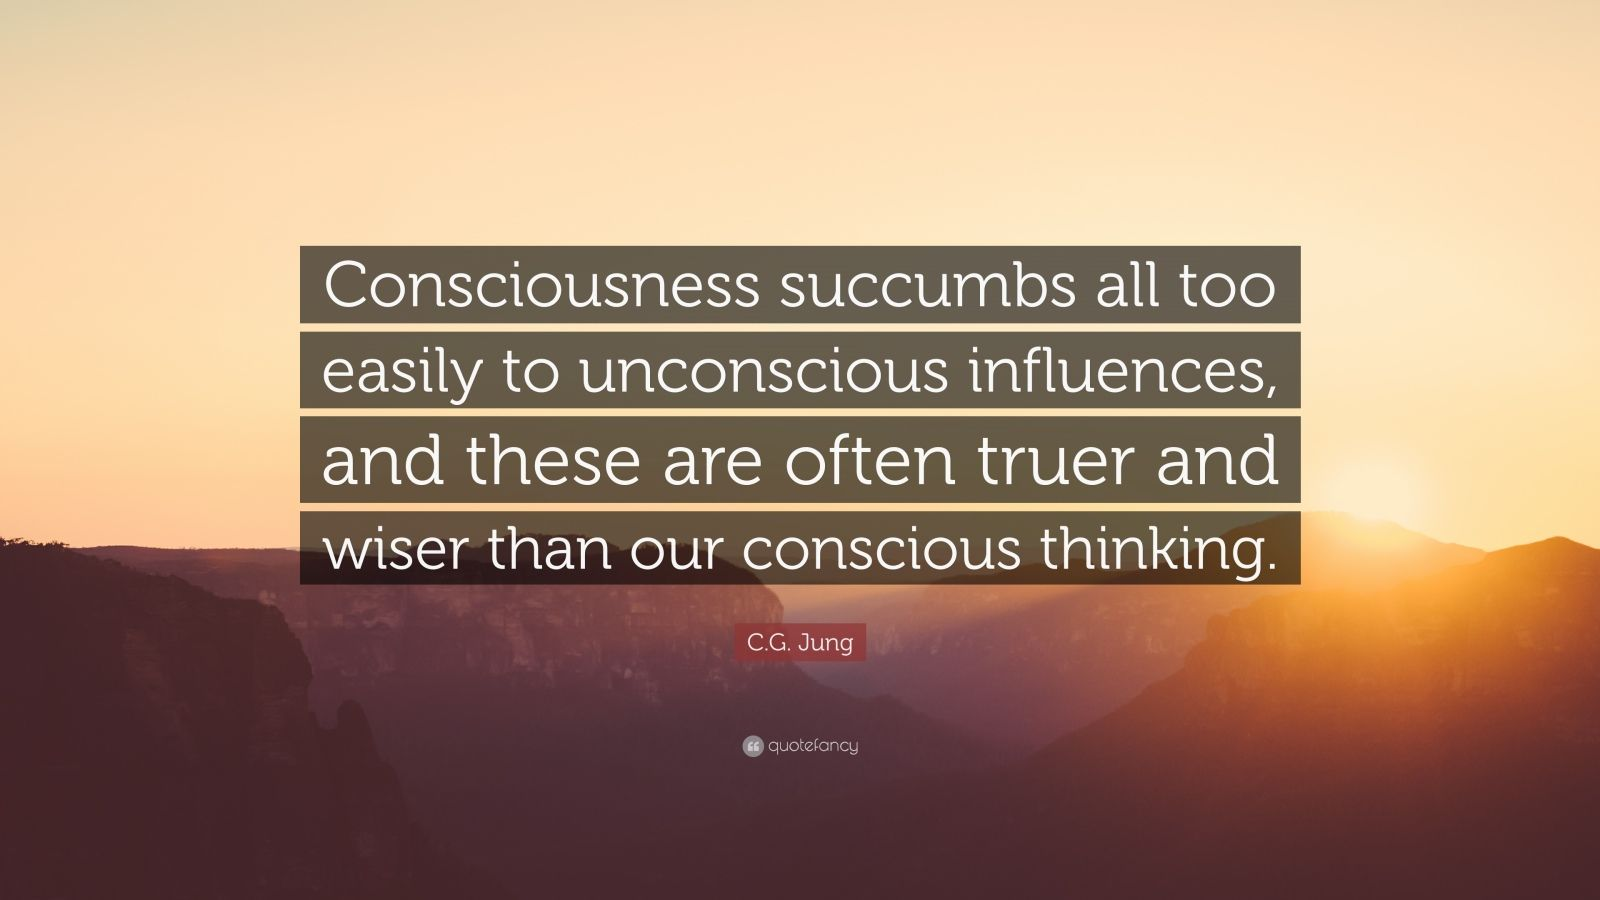 """C.G. Jung Quote: """"Consciousness succumbs all too easily to unconscious influences, and these are often truer and wiser than our conscious thinking."""""""